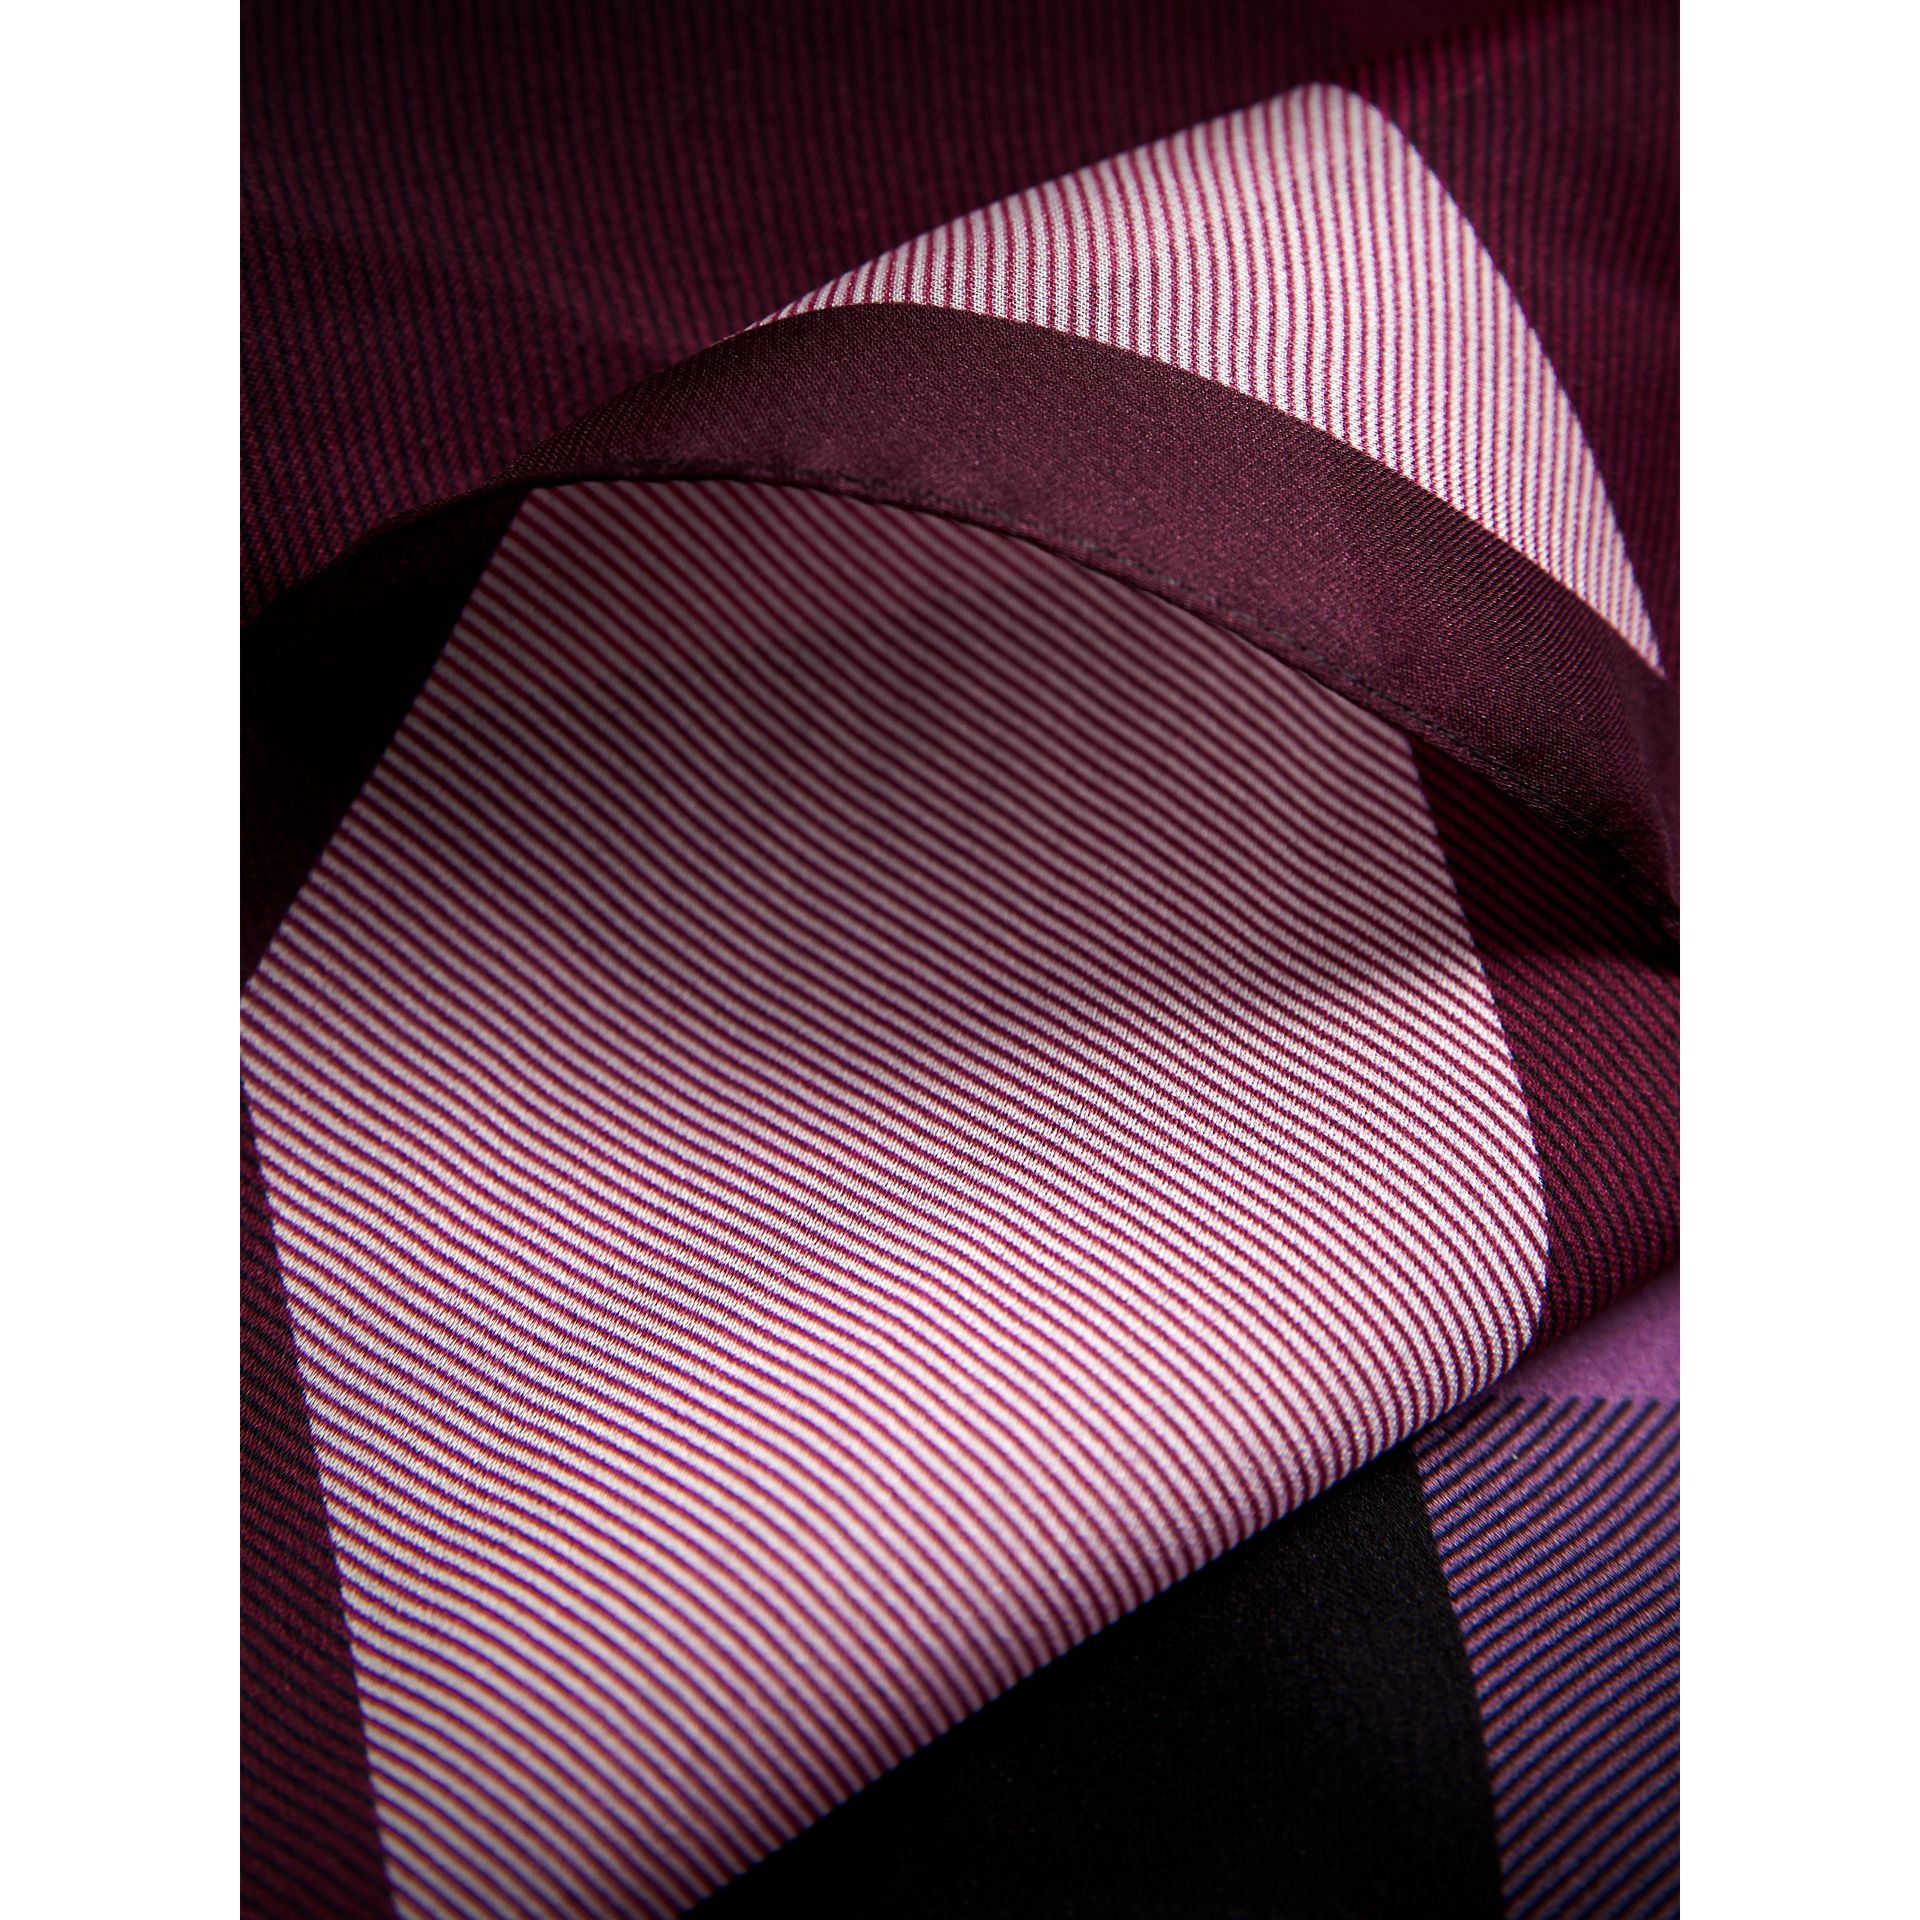 Ombré Washed Check Silk Scarf in Plum - Women | Burberry United Kingdom - gallery image 1